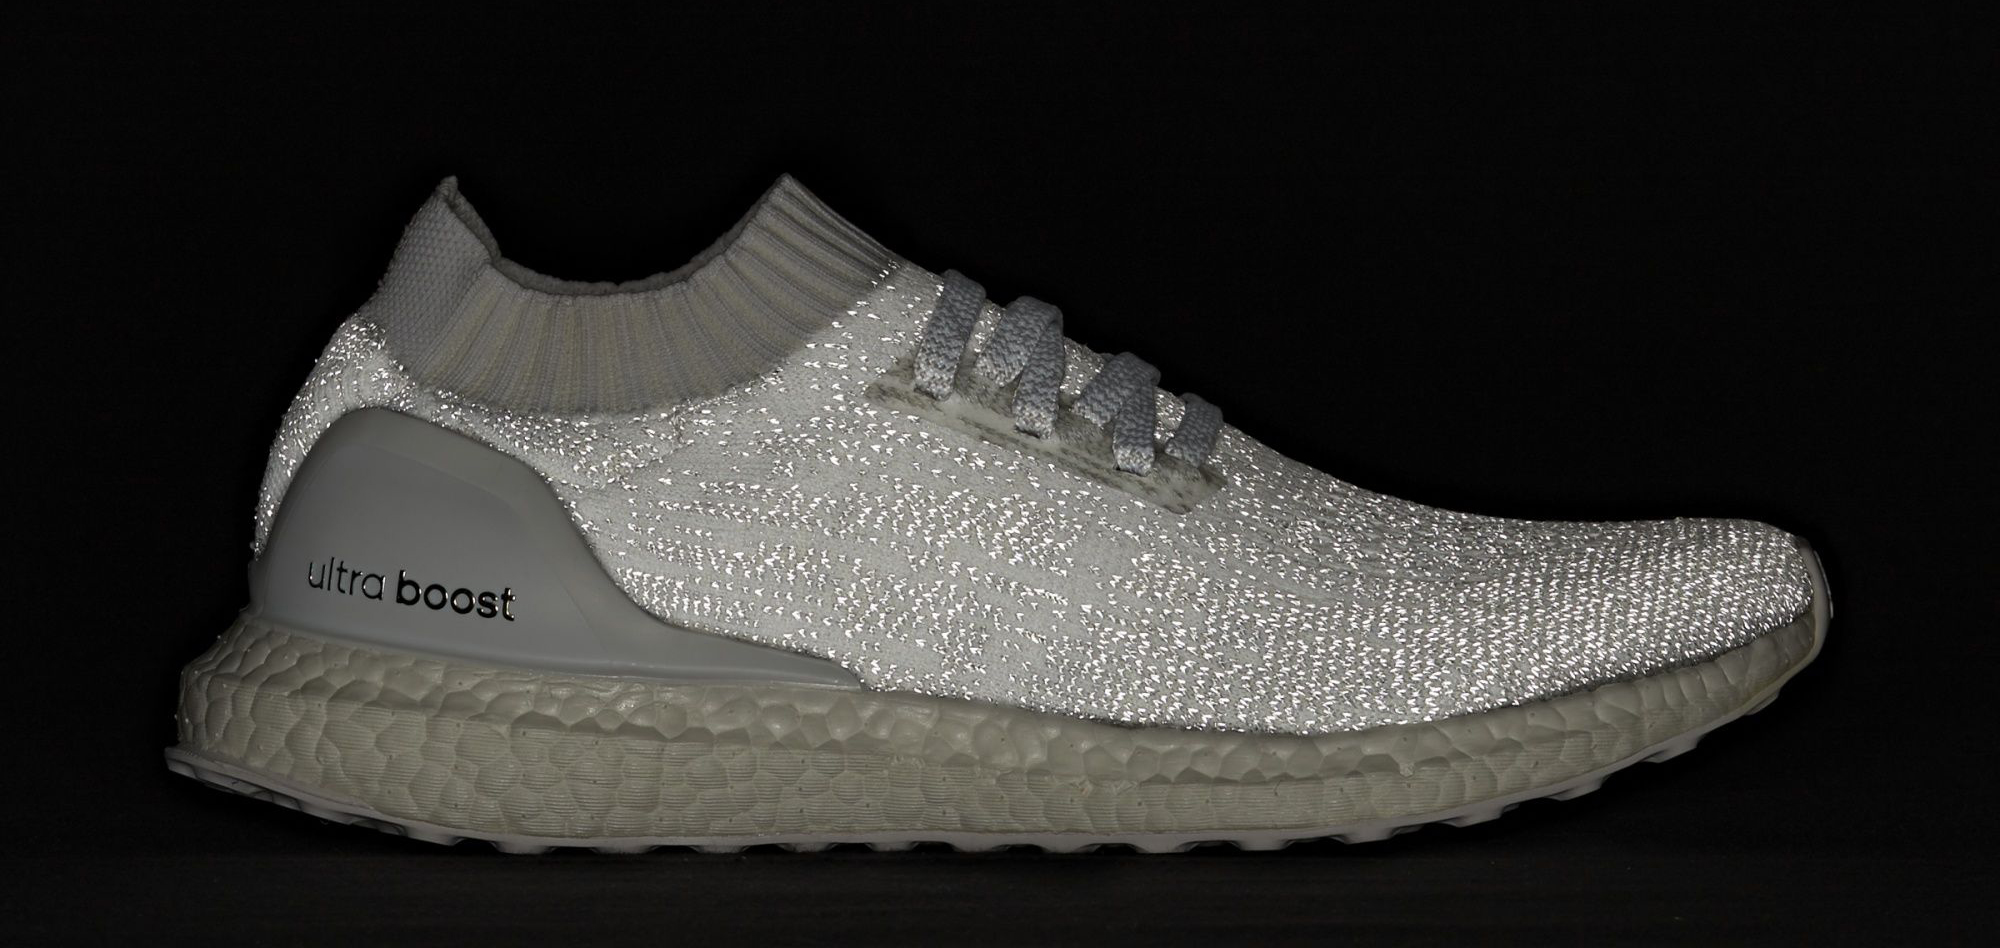 46ec3f5d8d77e Image via Adidas Adidas Ultra Boost Uncaged White Reflective Flash